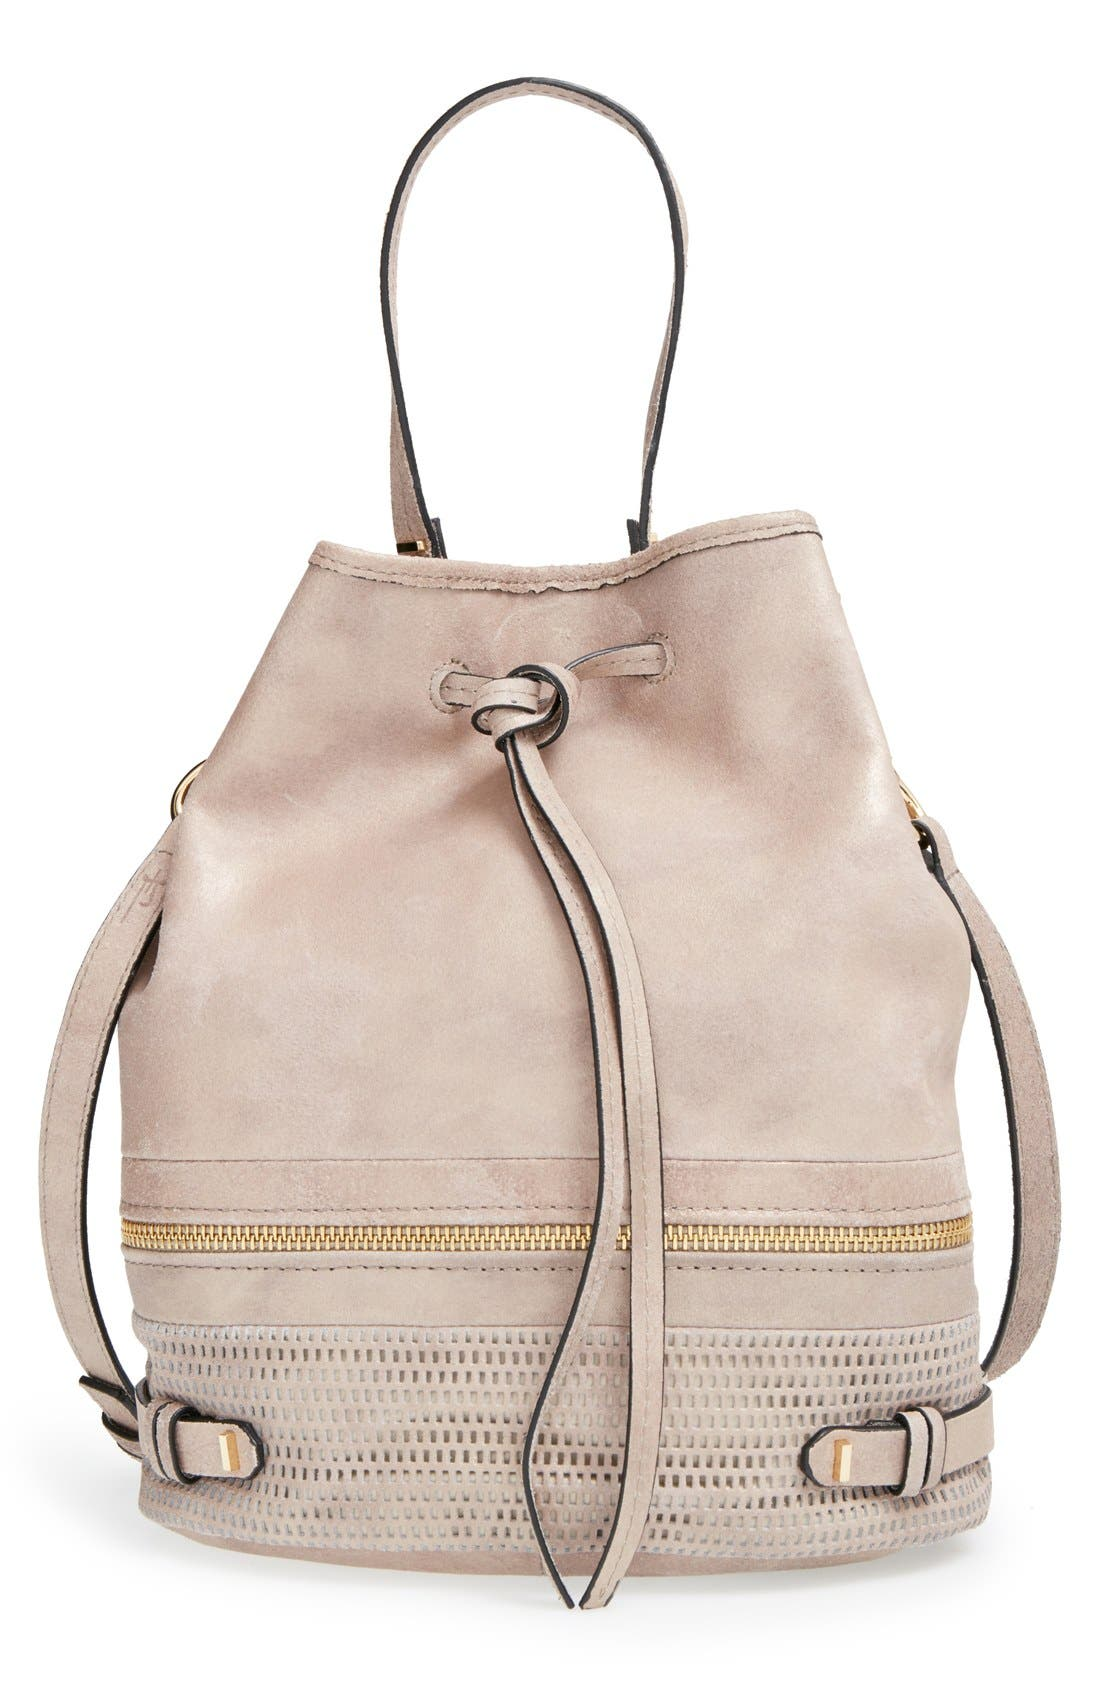 Alternate Image 1 Selected - She + Lo 'Silver Lining' Drawstring Shoulder Bag